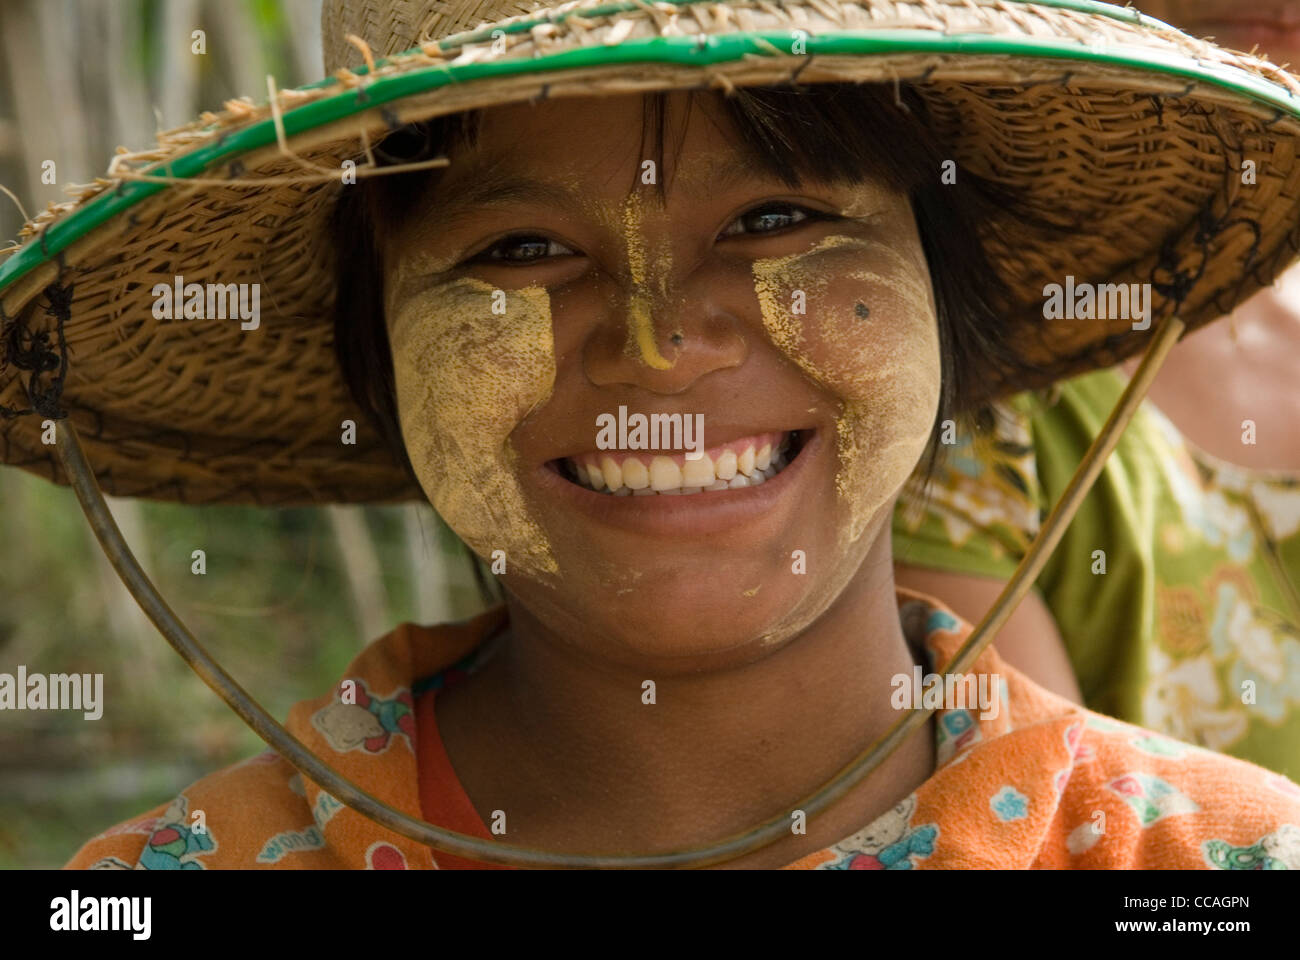 Teen girl wearing makeup Thanakha. A natural product, naturally produced. Myanmar Myanma Burma - Stock Image